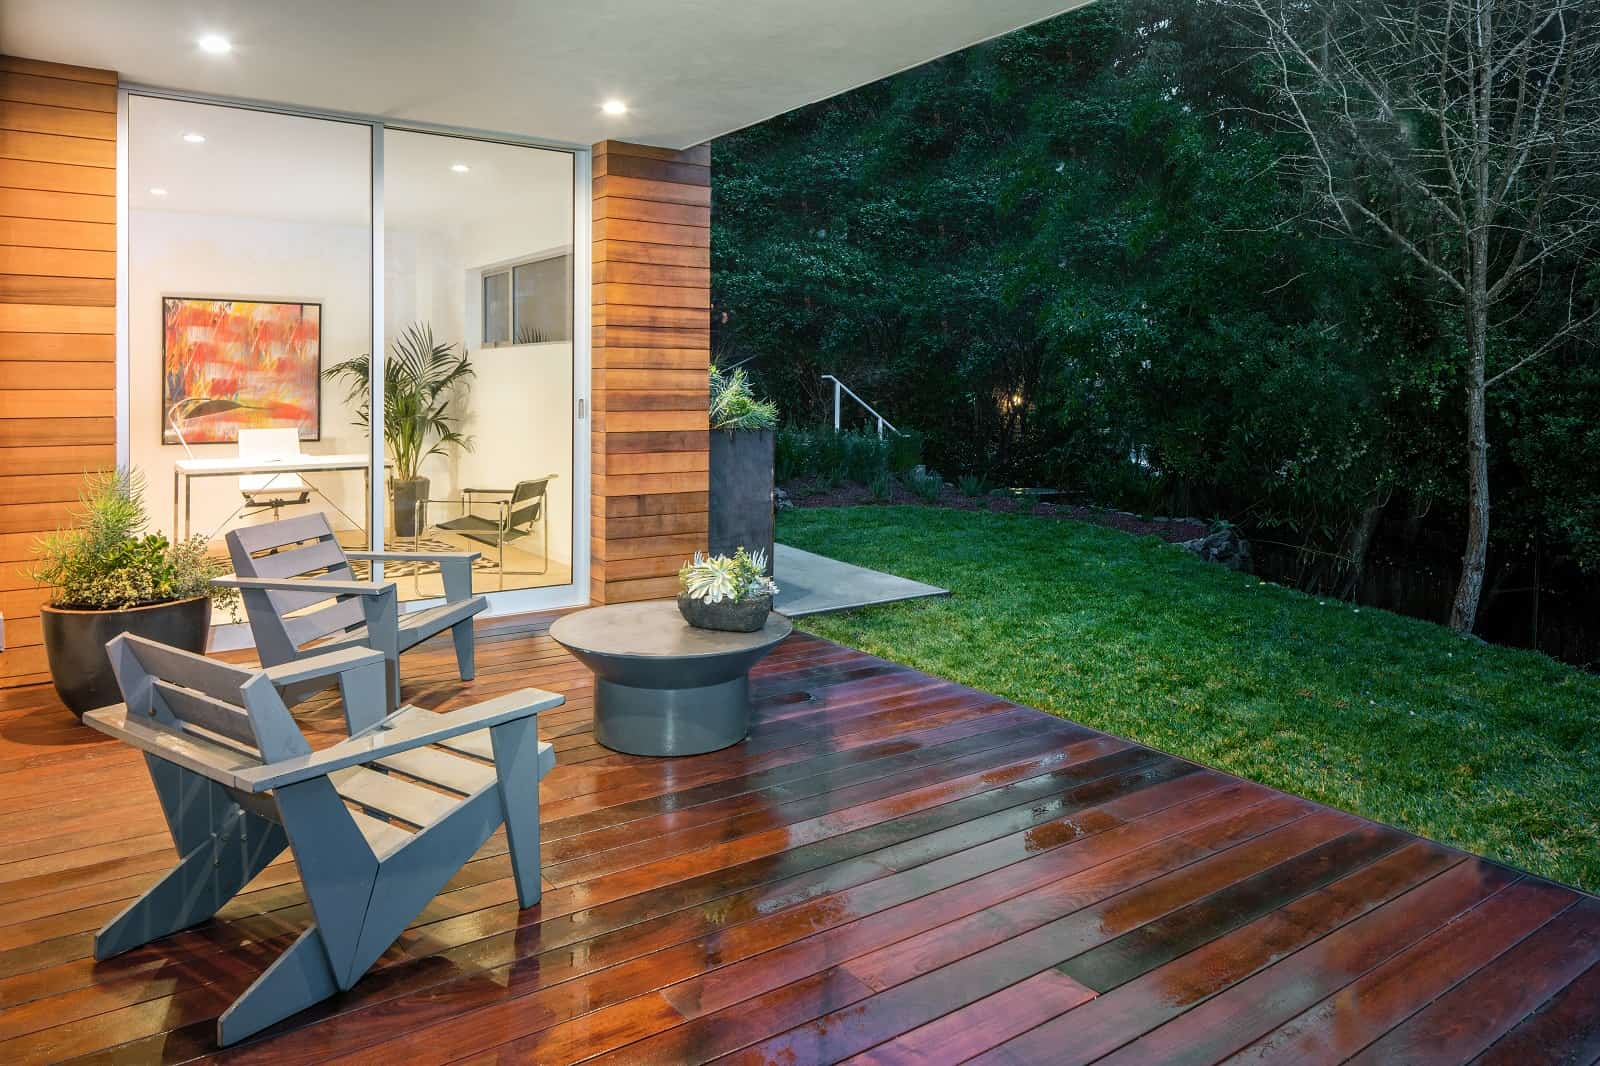 9 Ways To Liven Up Your Patio. Dark lacquered patio deck with gray wooden chairs and a small round table